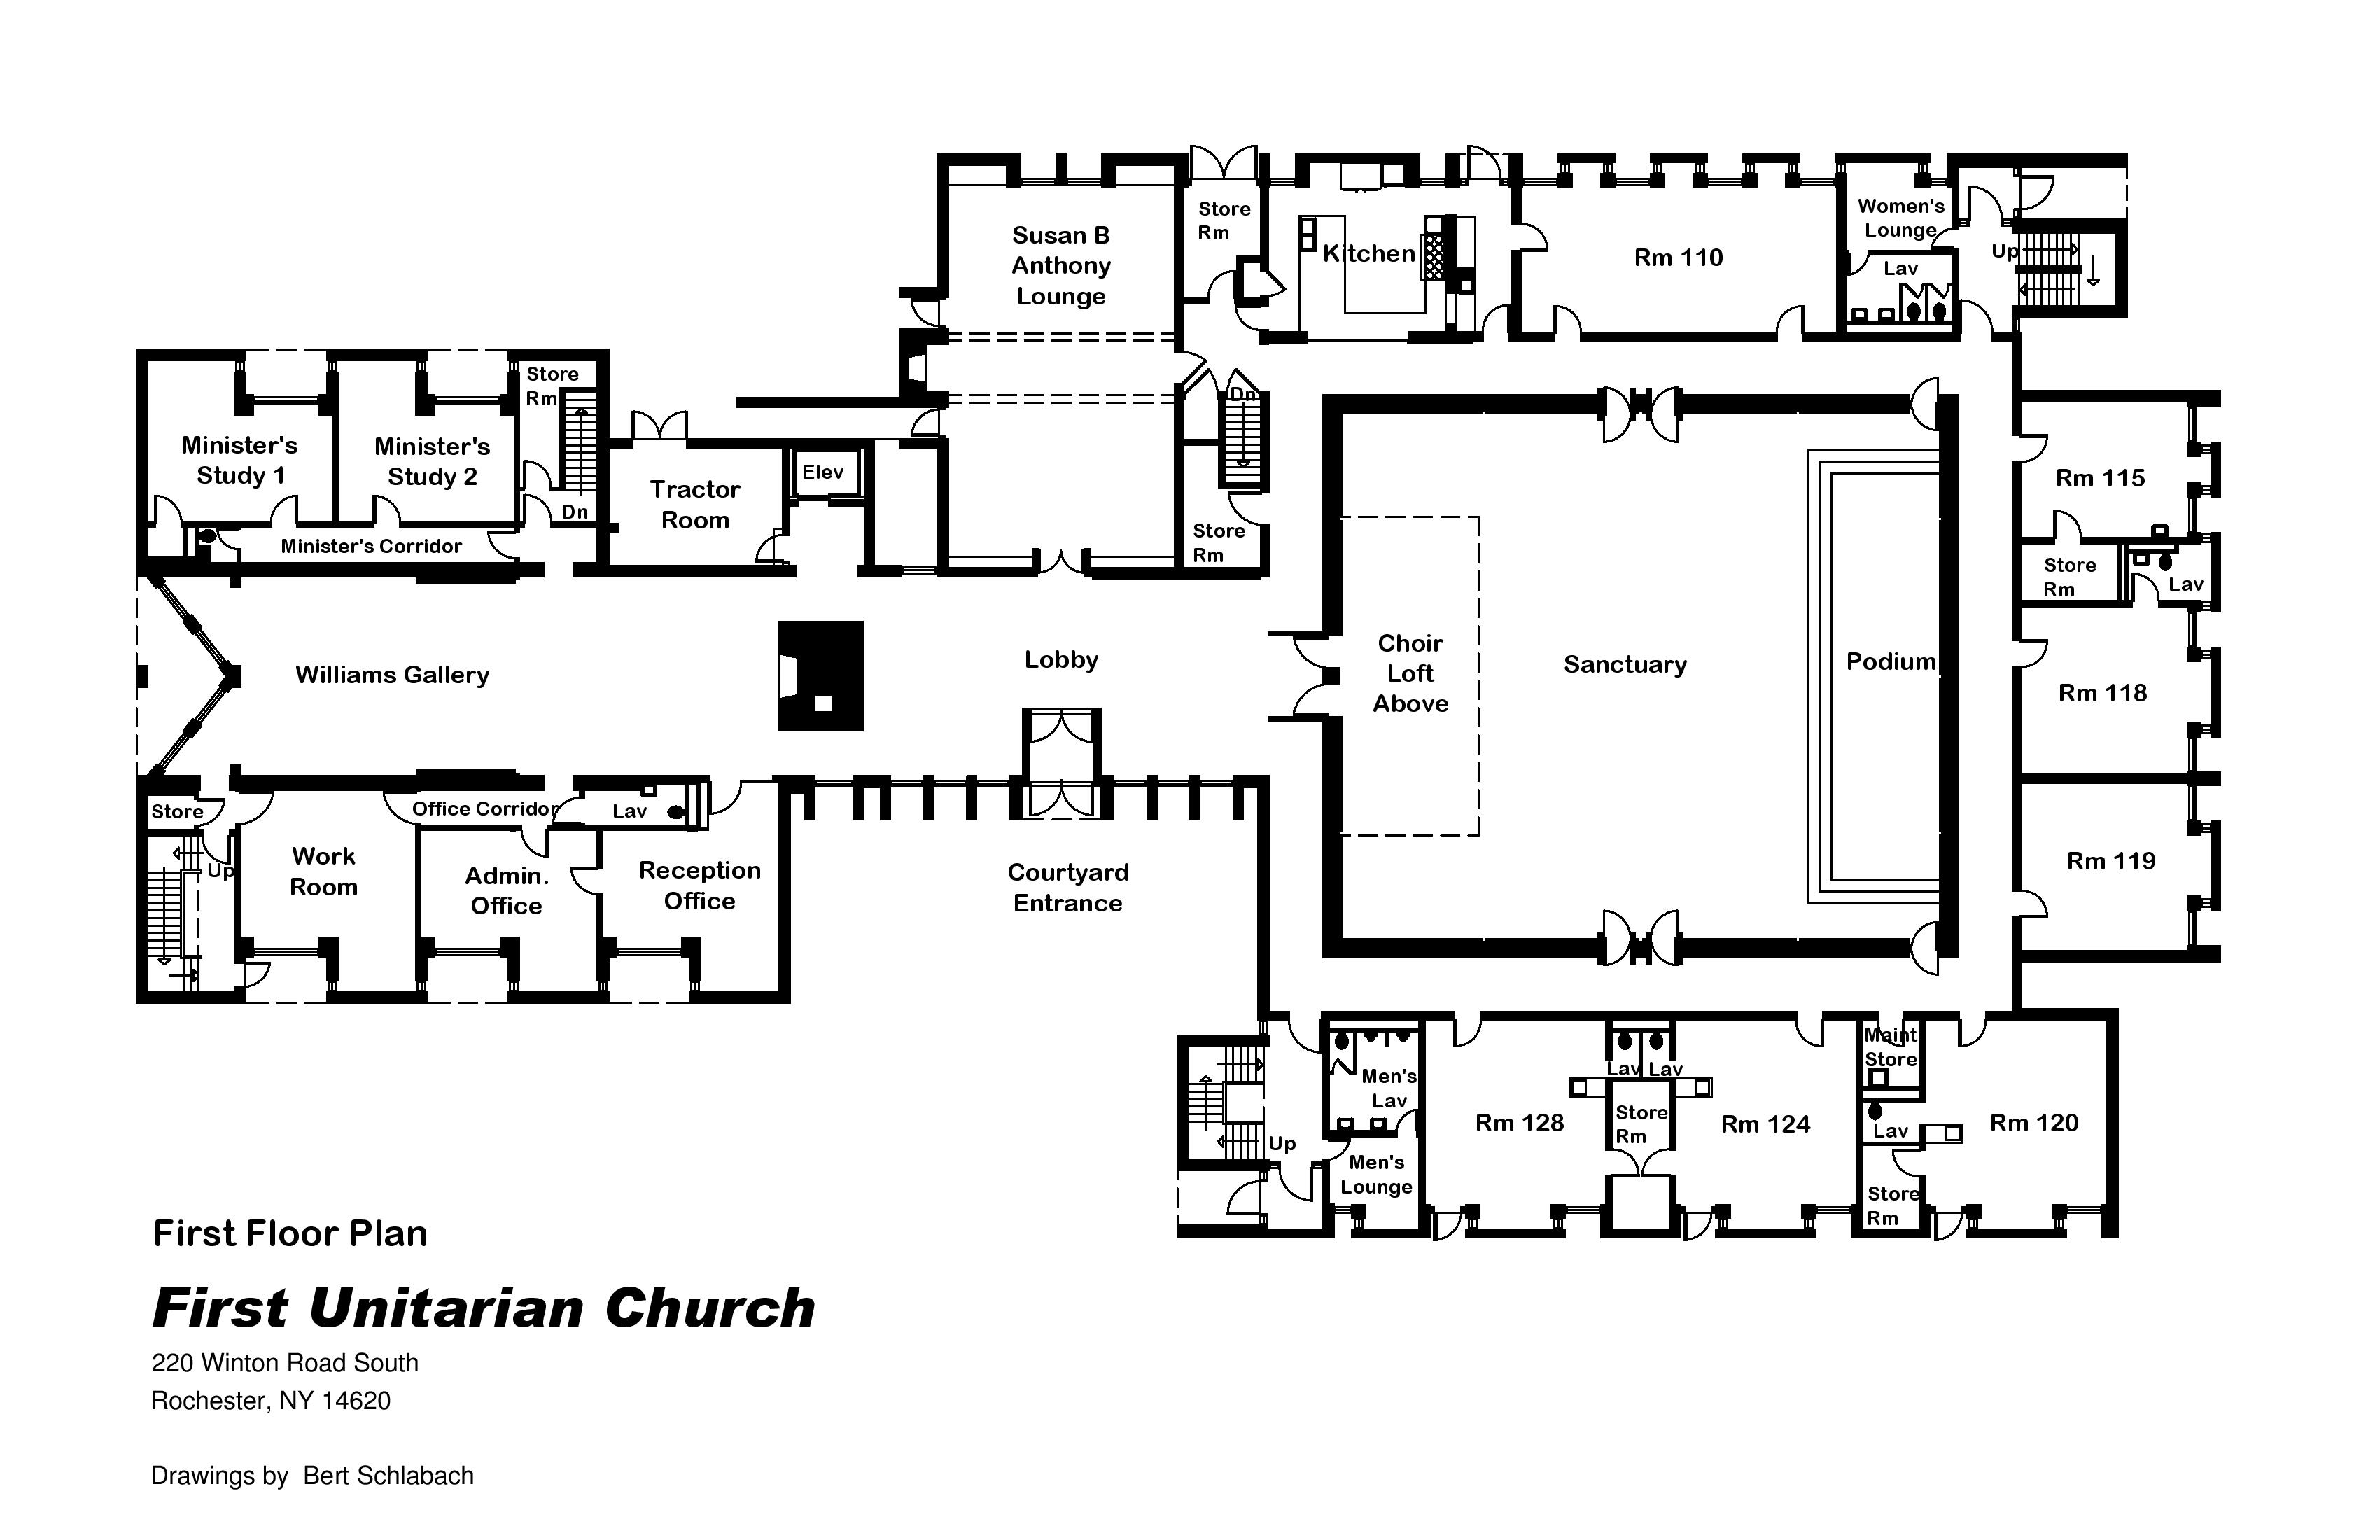 File:First Unitarian Church of Rochester, NY - 1st Floor Plan.JPG